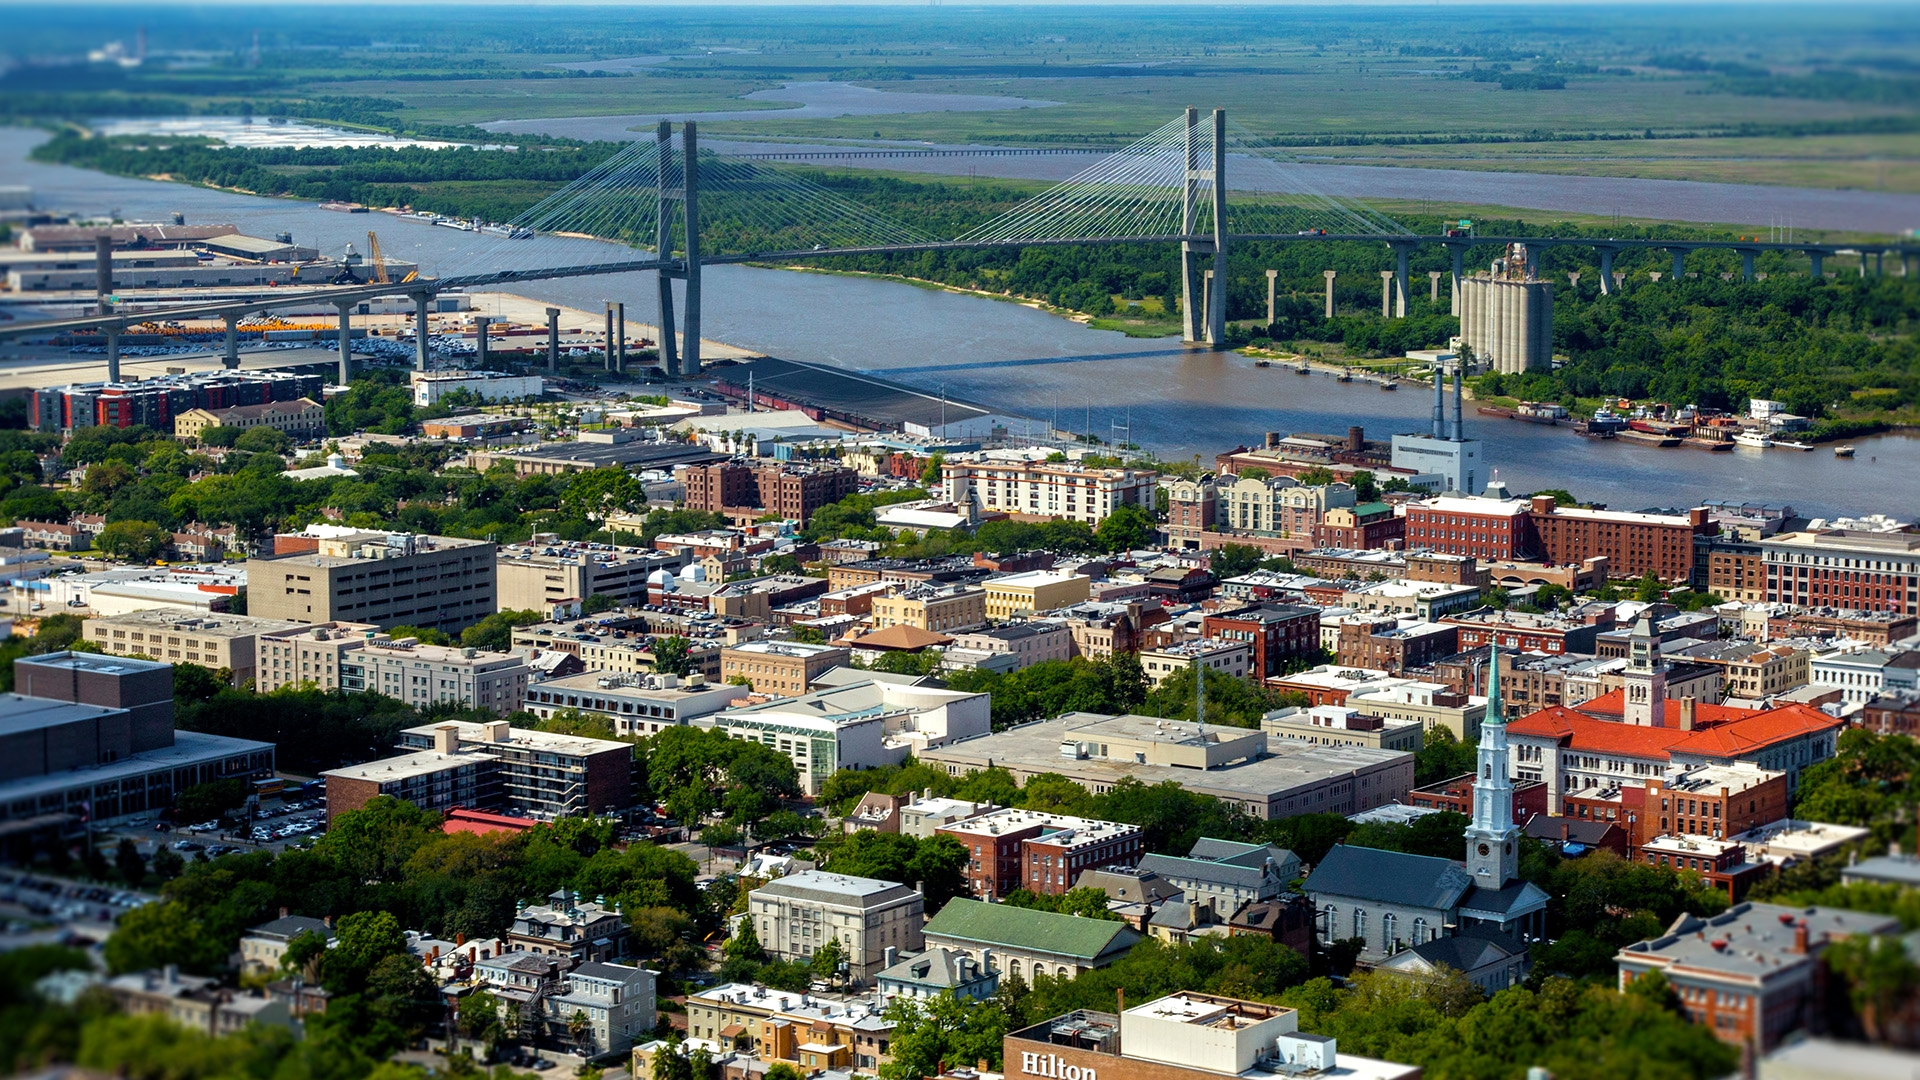 Talmadge bridge in Savannah